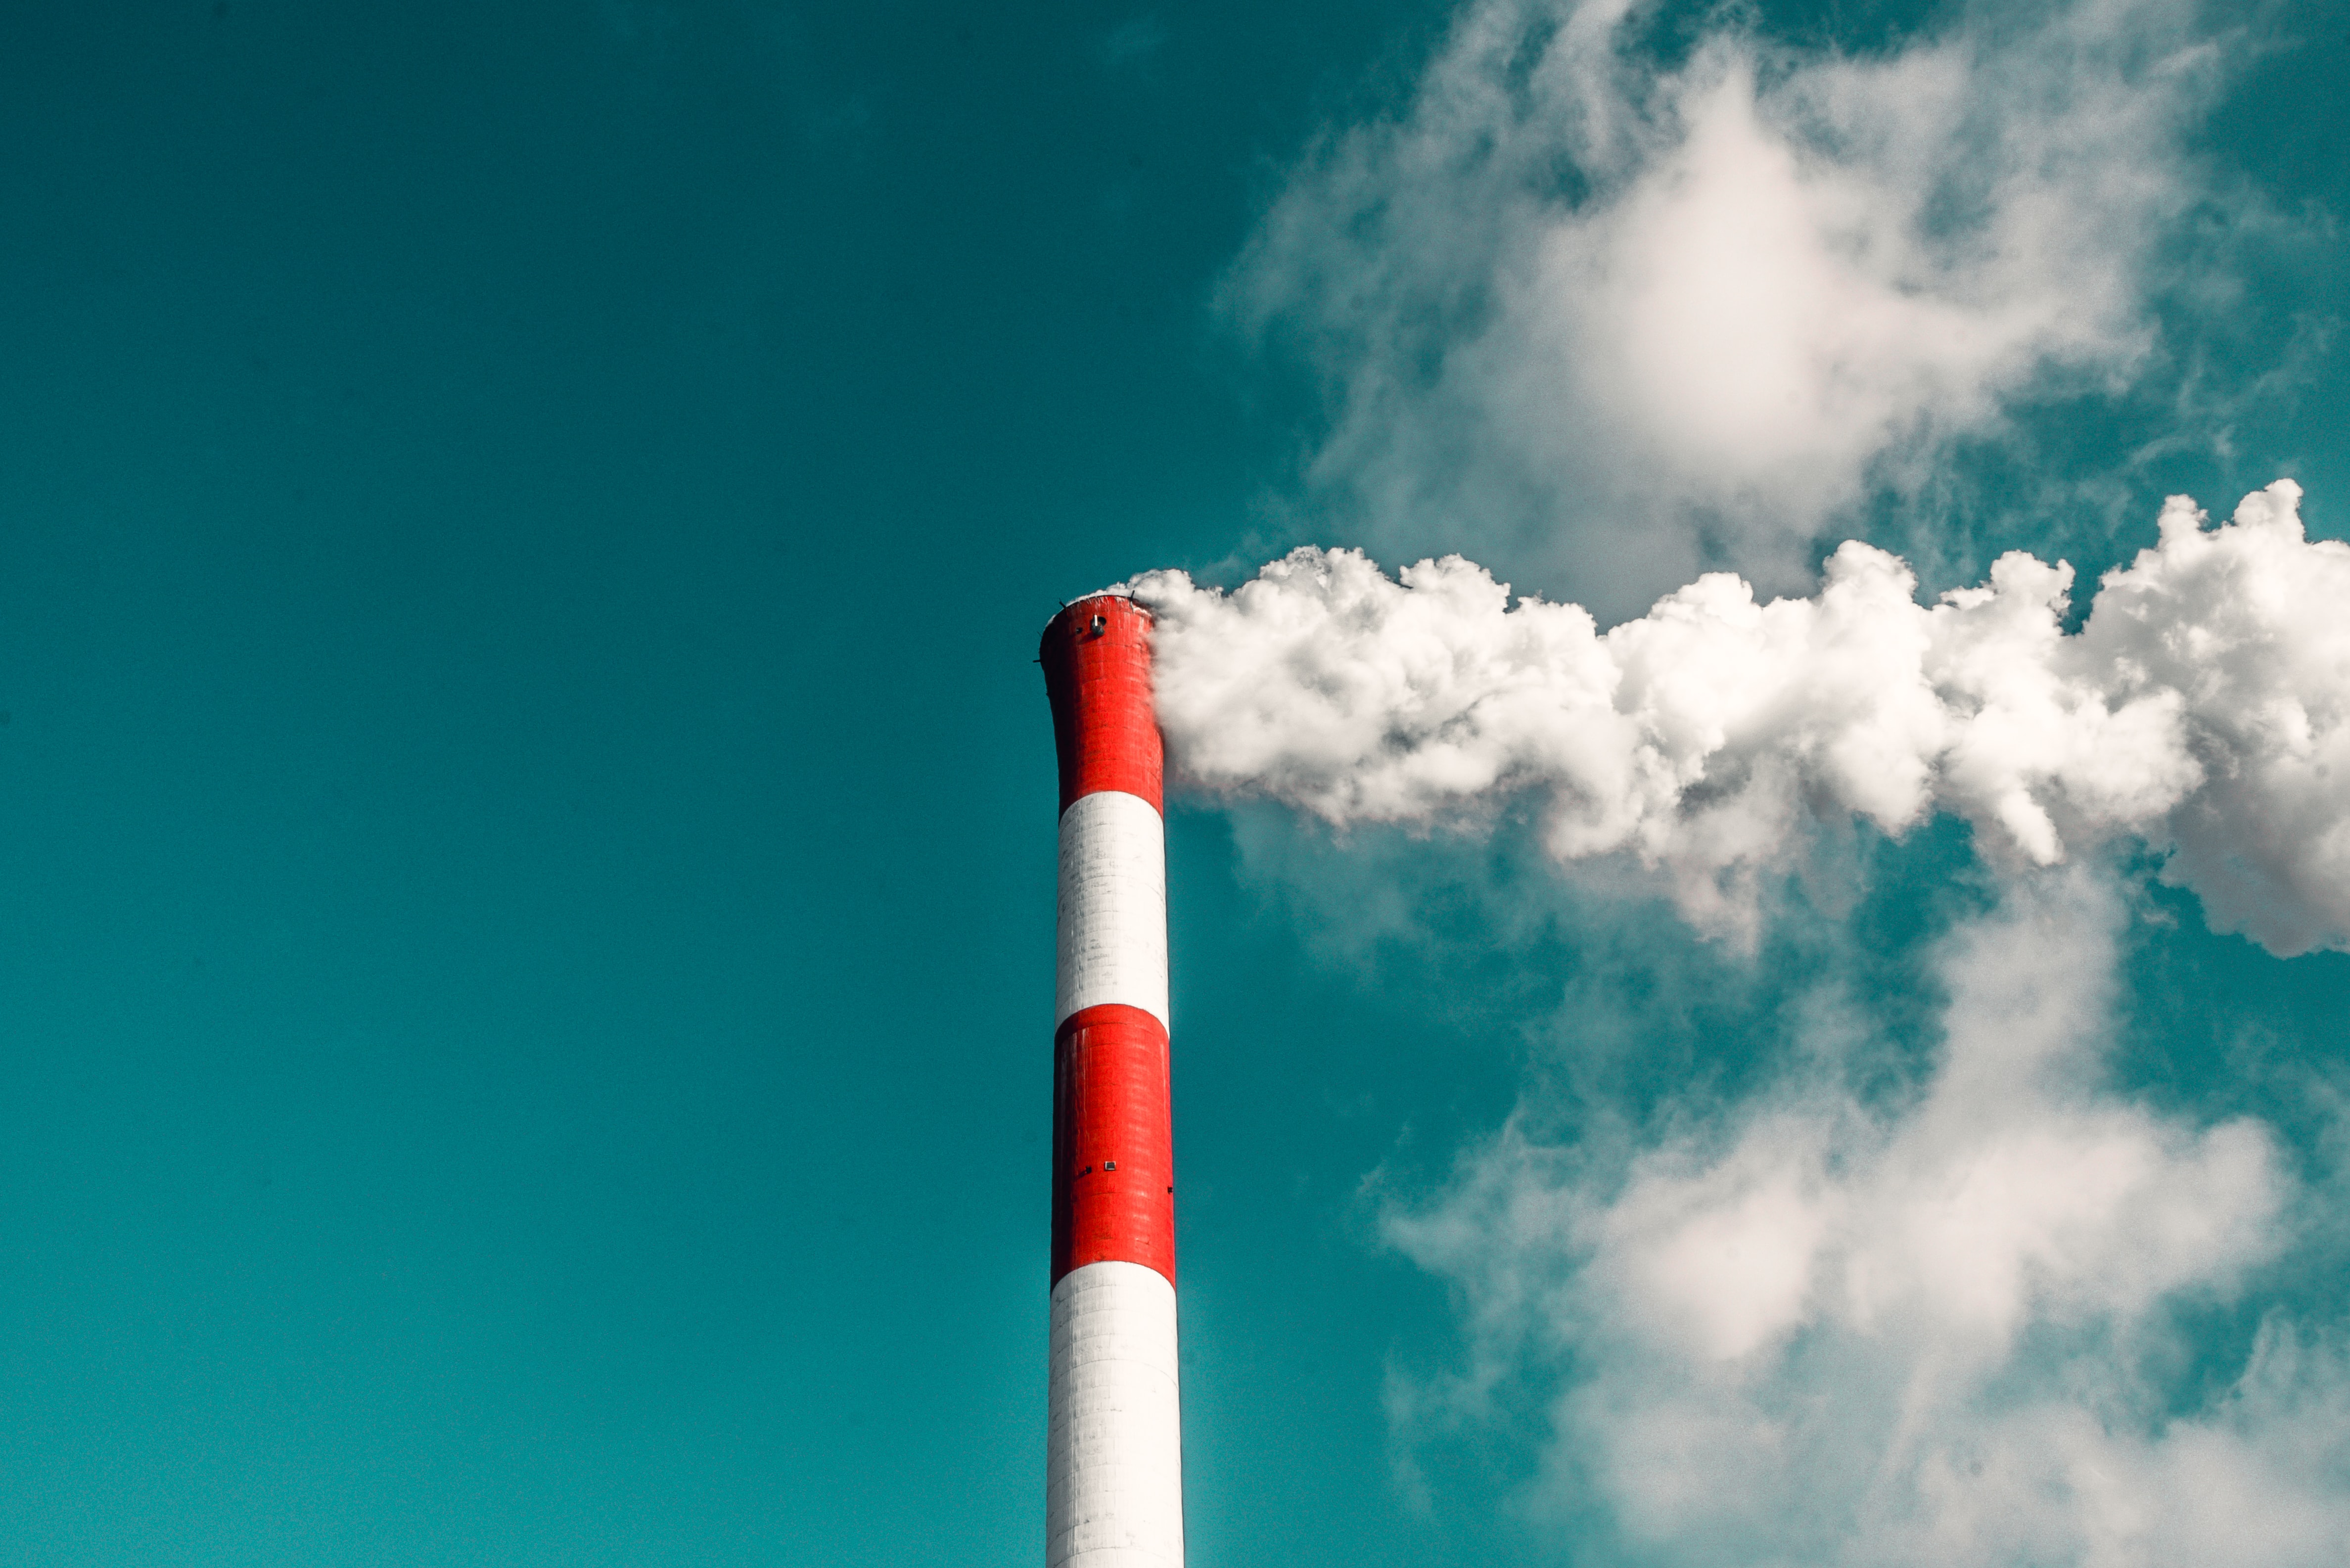 How Have Emissions Reduced in Response to Covid-19 and What Does It Mean?